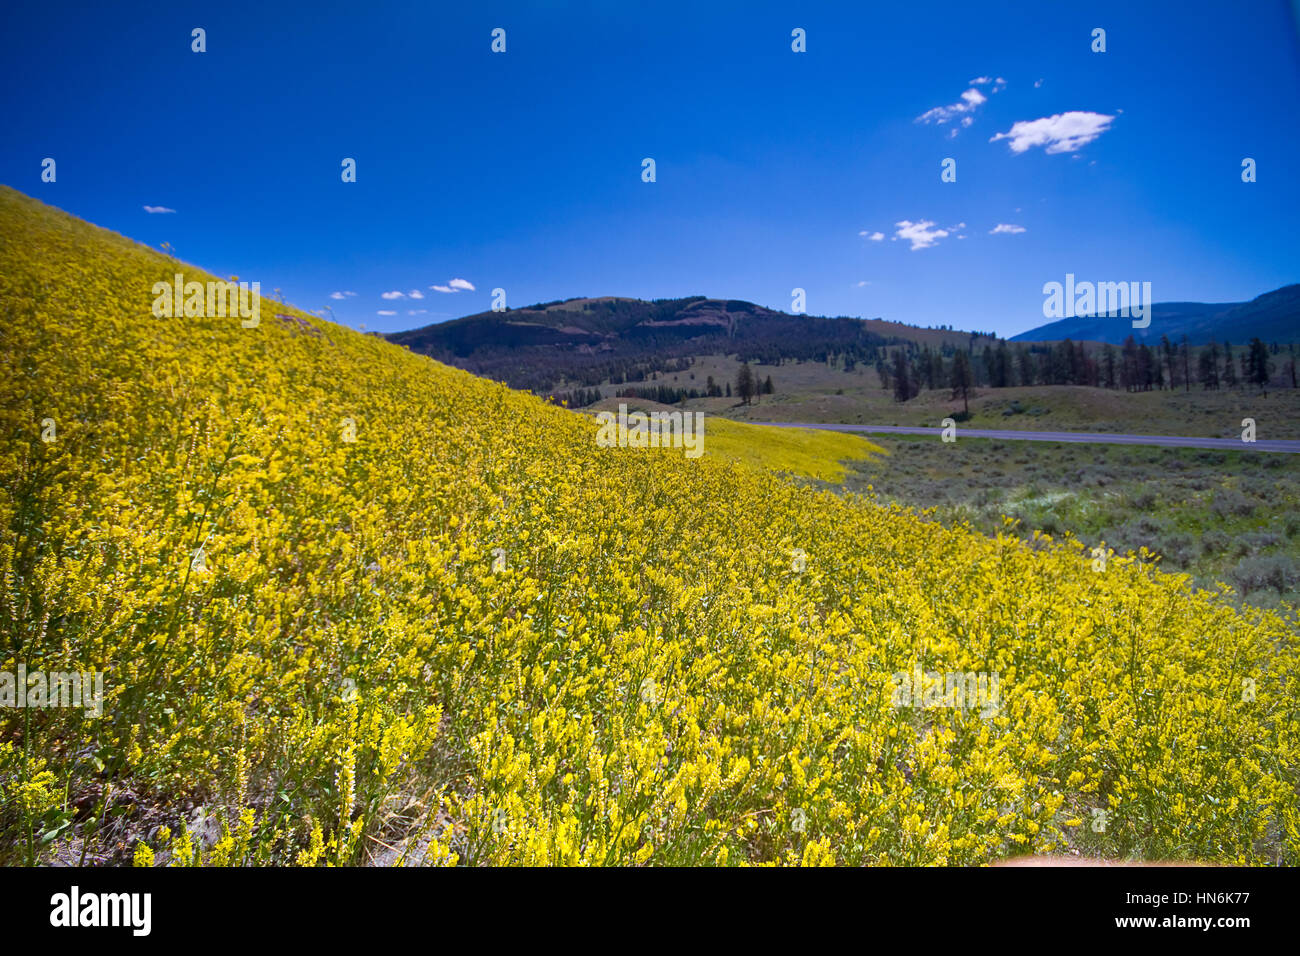 Yellow spring flowers blooming in yellowstone national park stock photo yellow spring flowers blooming in yellowstone national park wyoming usa dhlflorist Choice Image